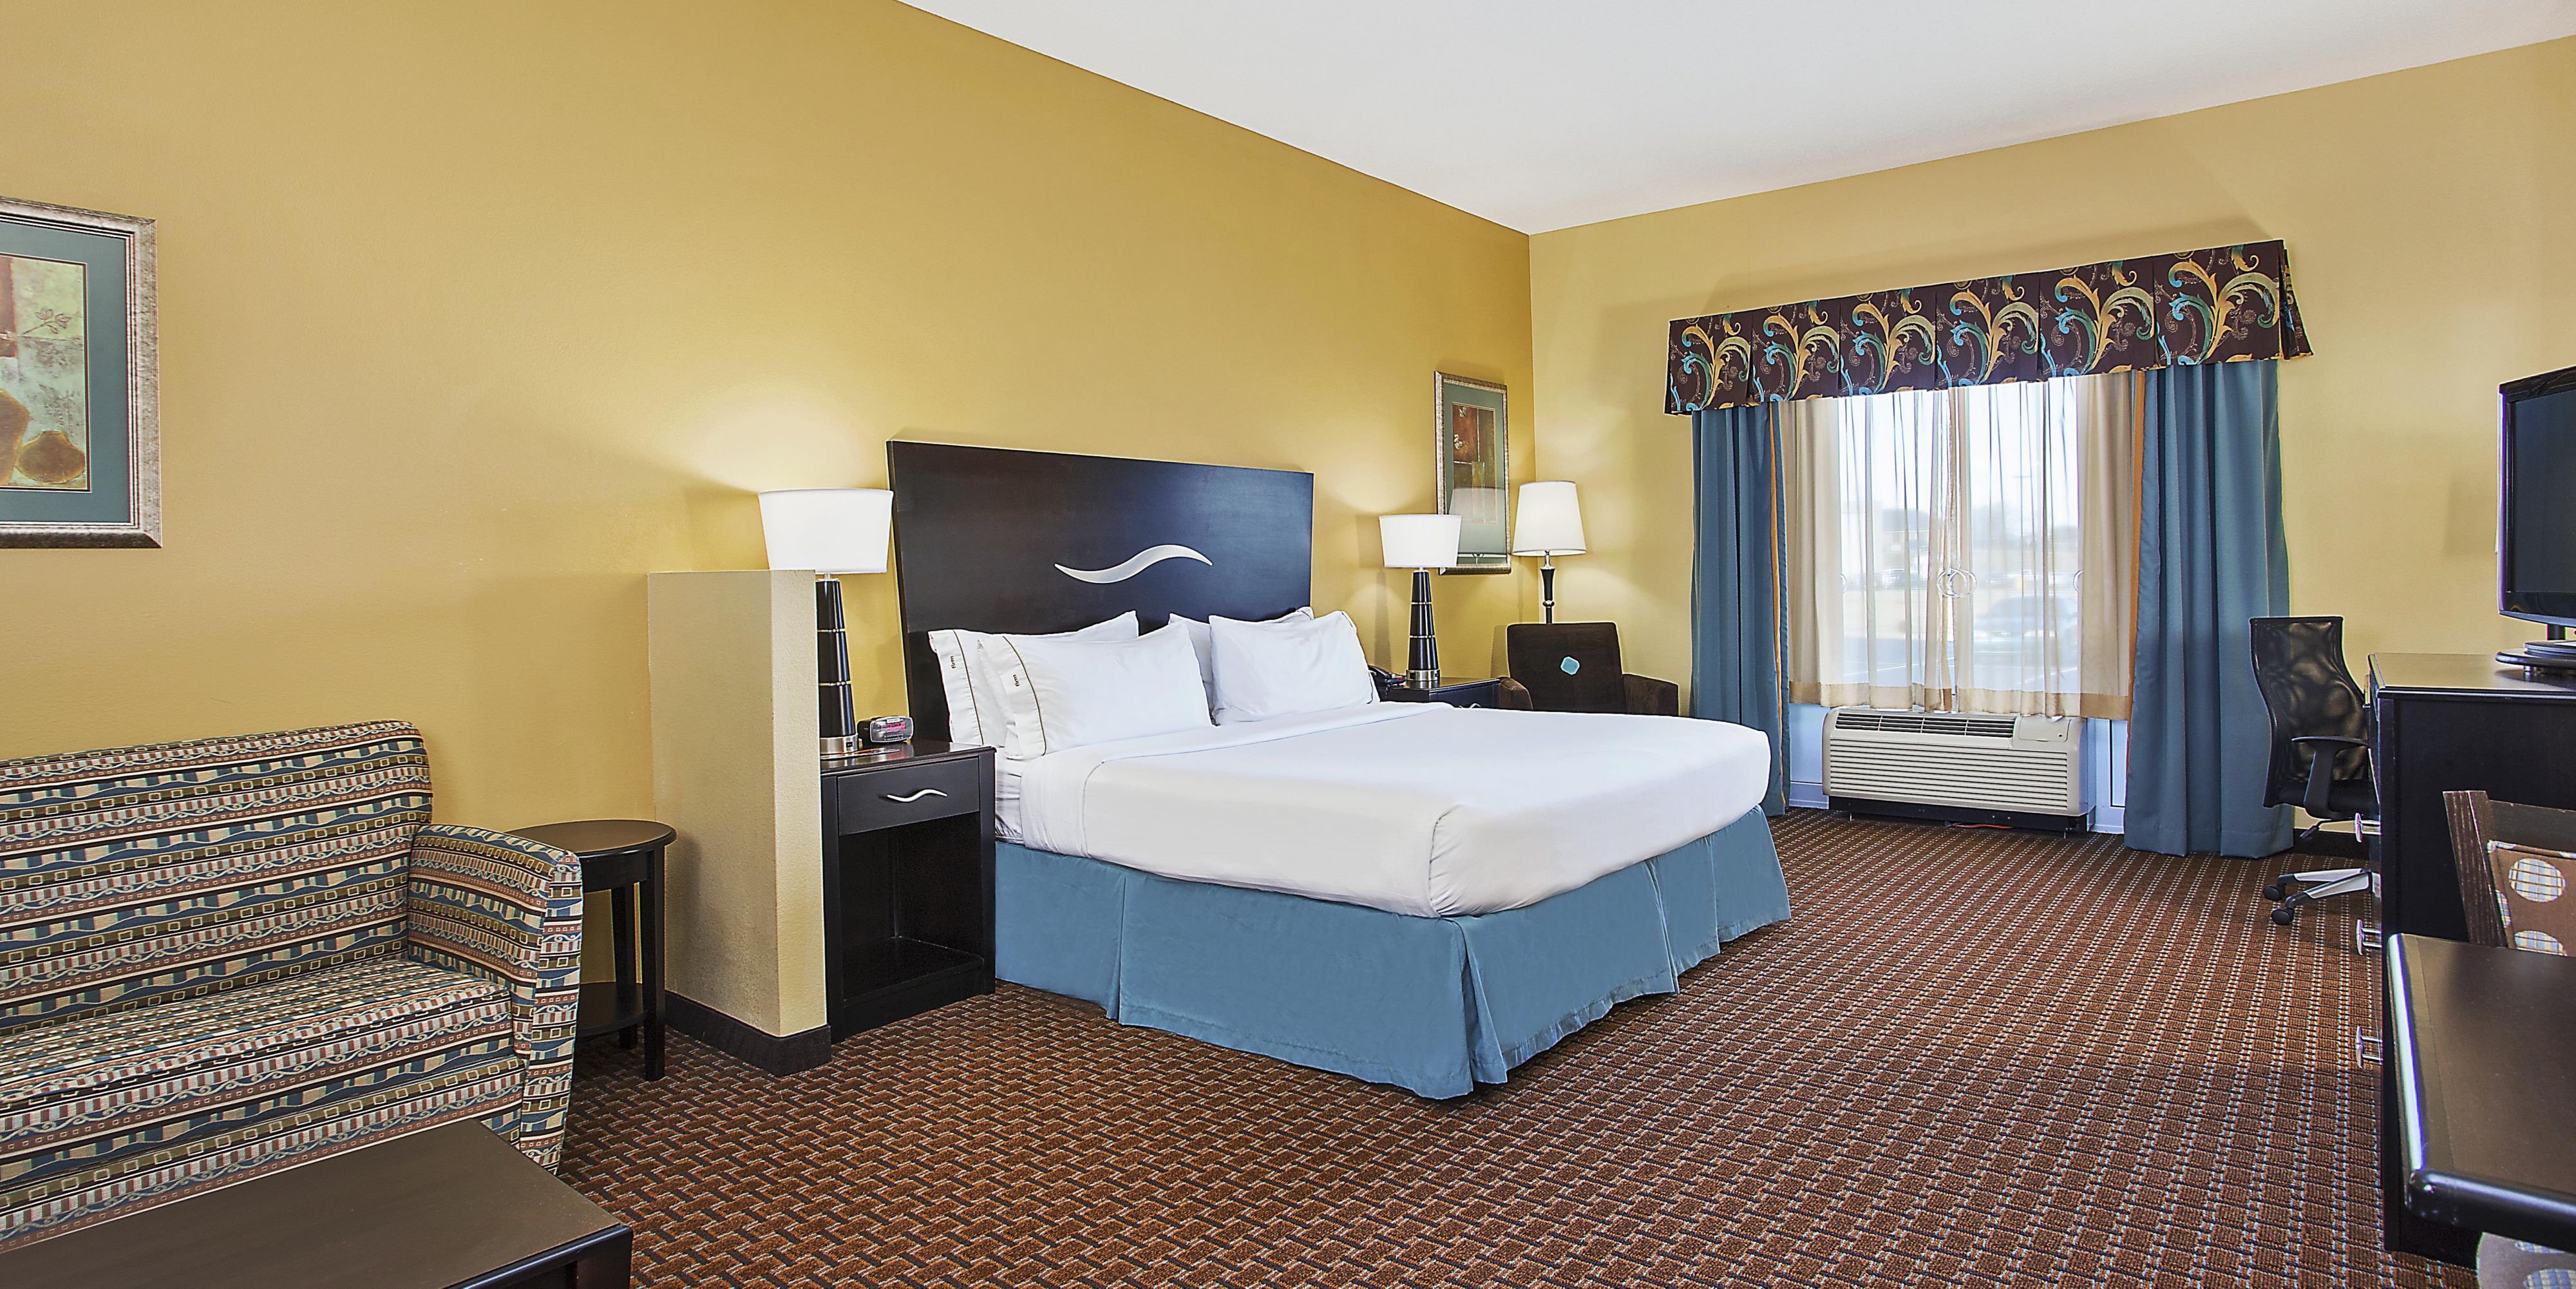 Holiday Inn Express Suites Somerset Central Ihg Hotel